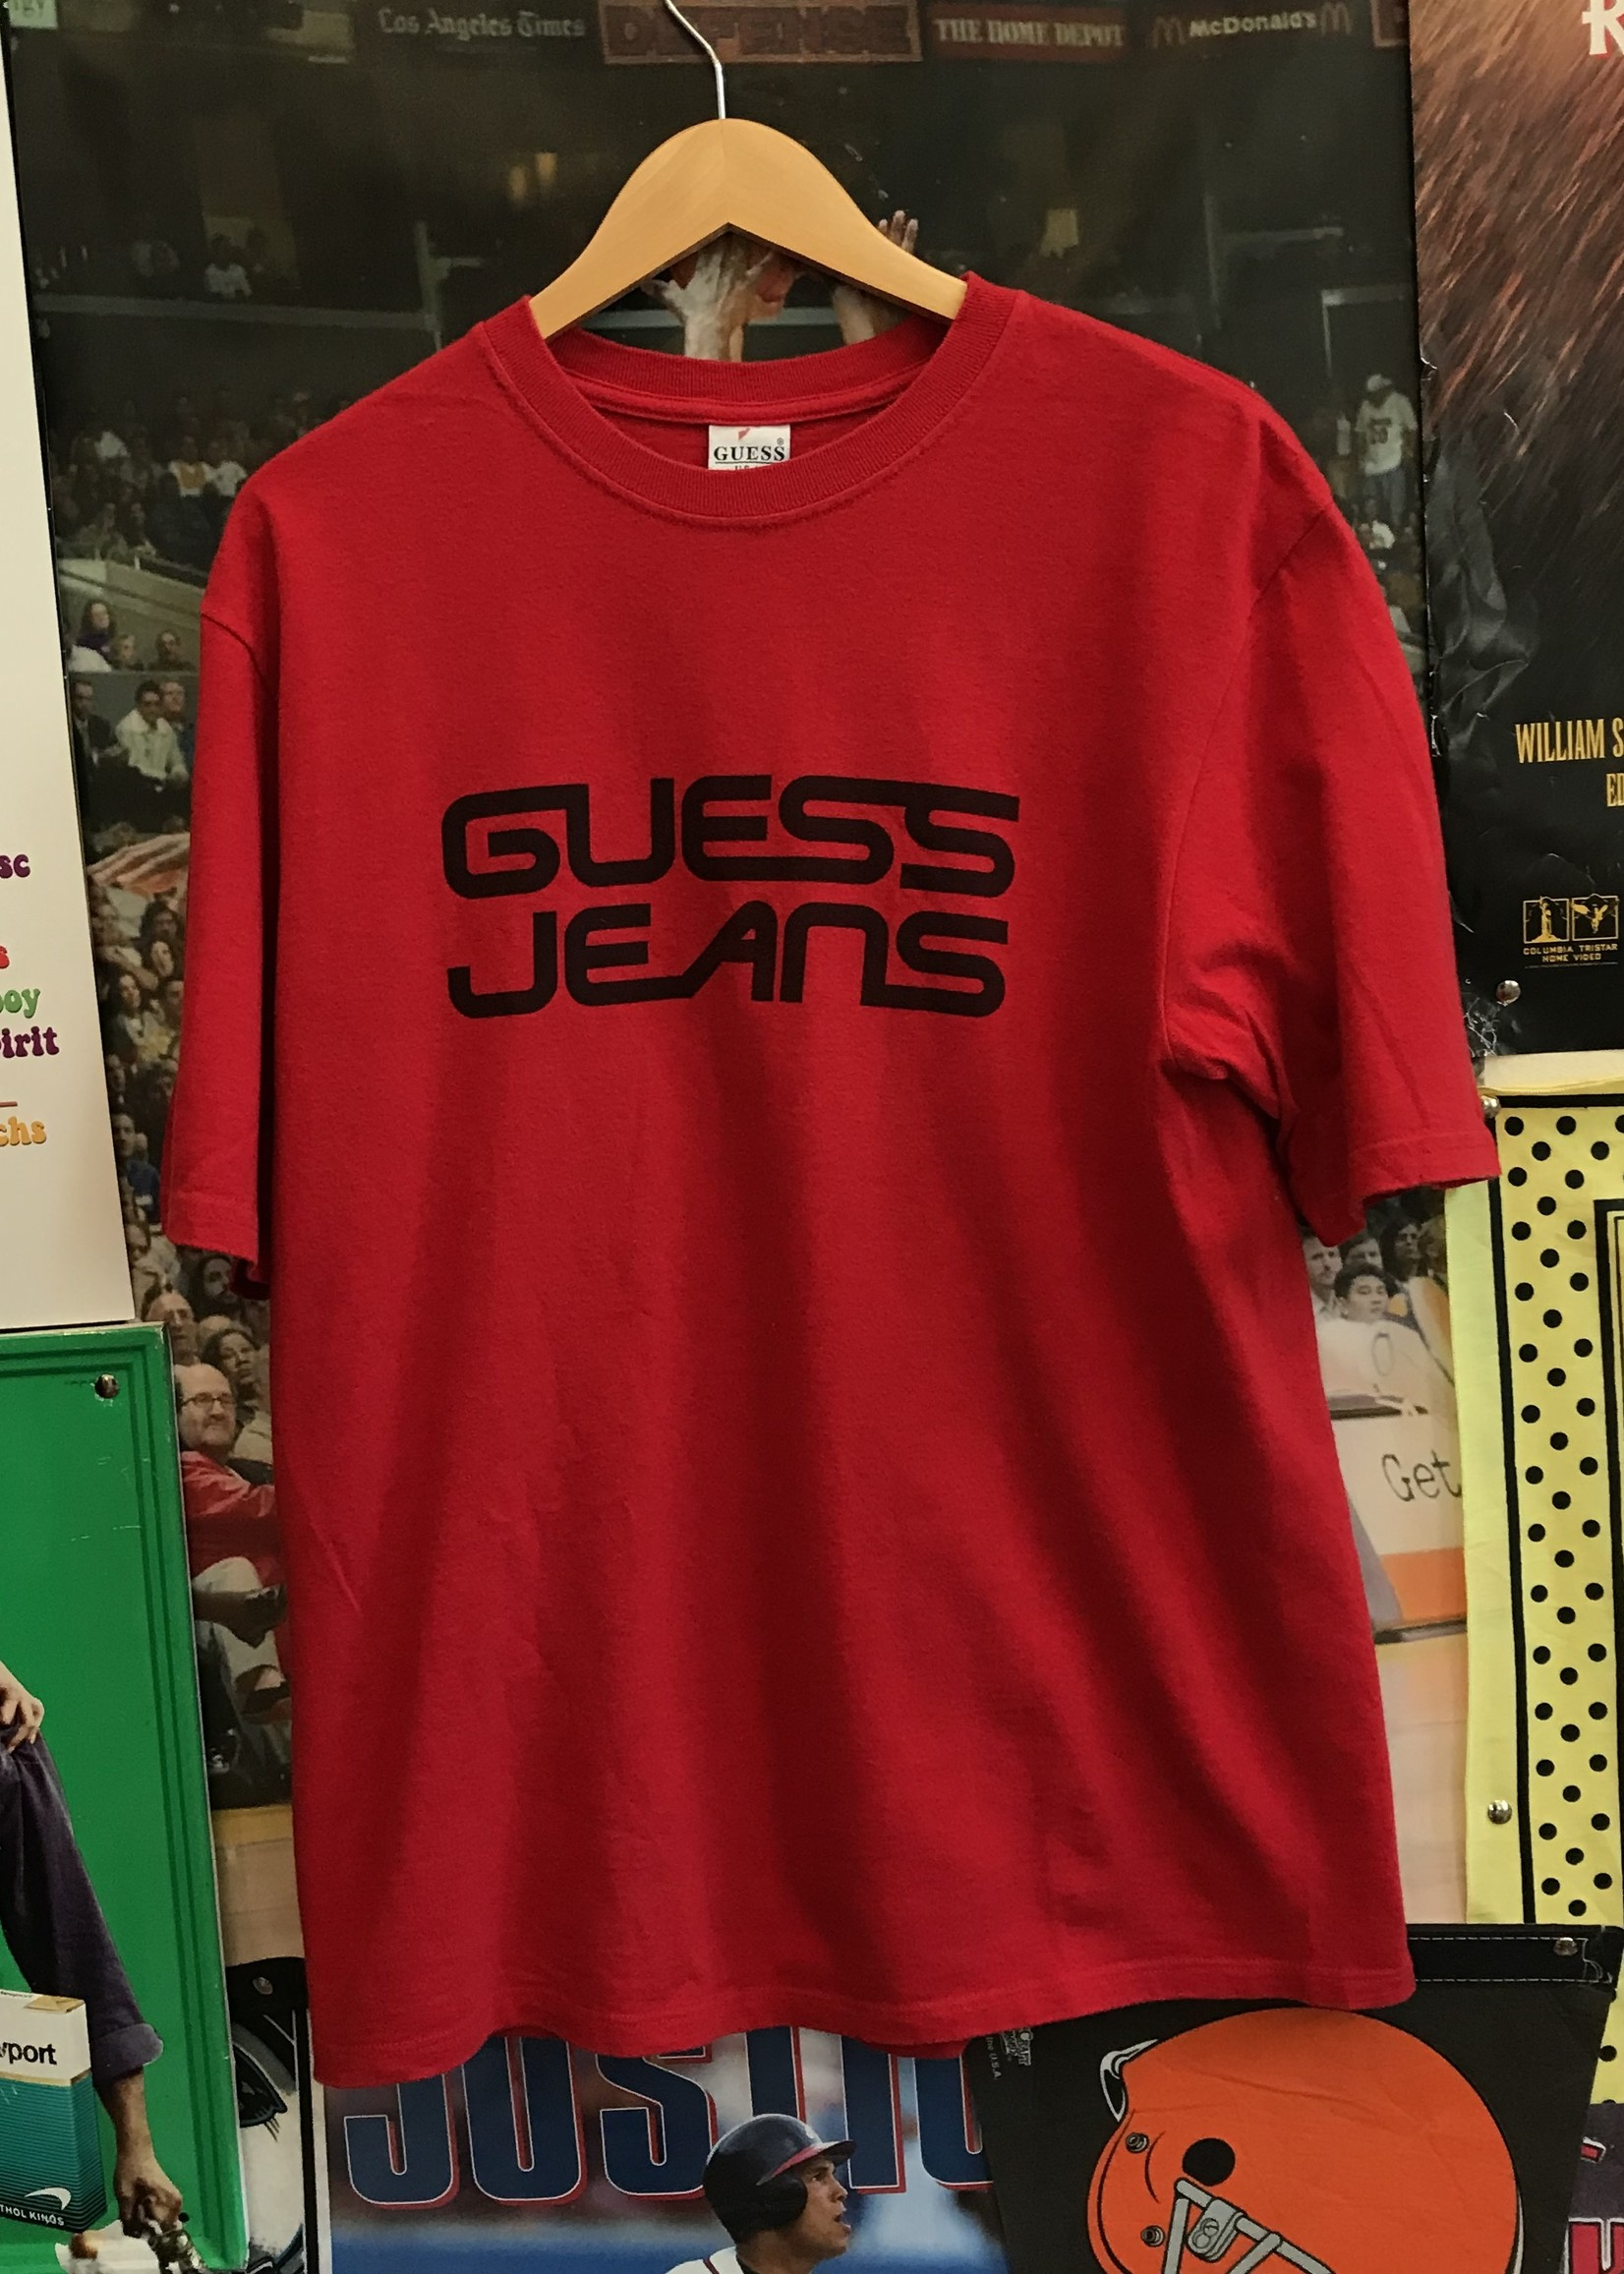 3991guess jeans tee red sz M